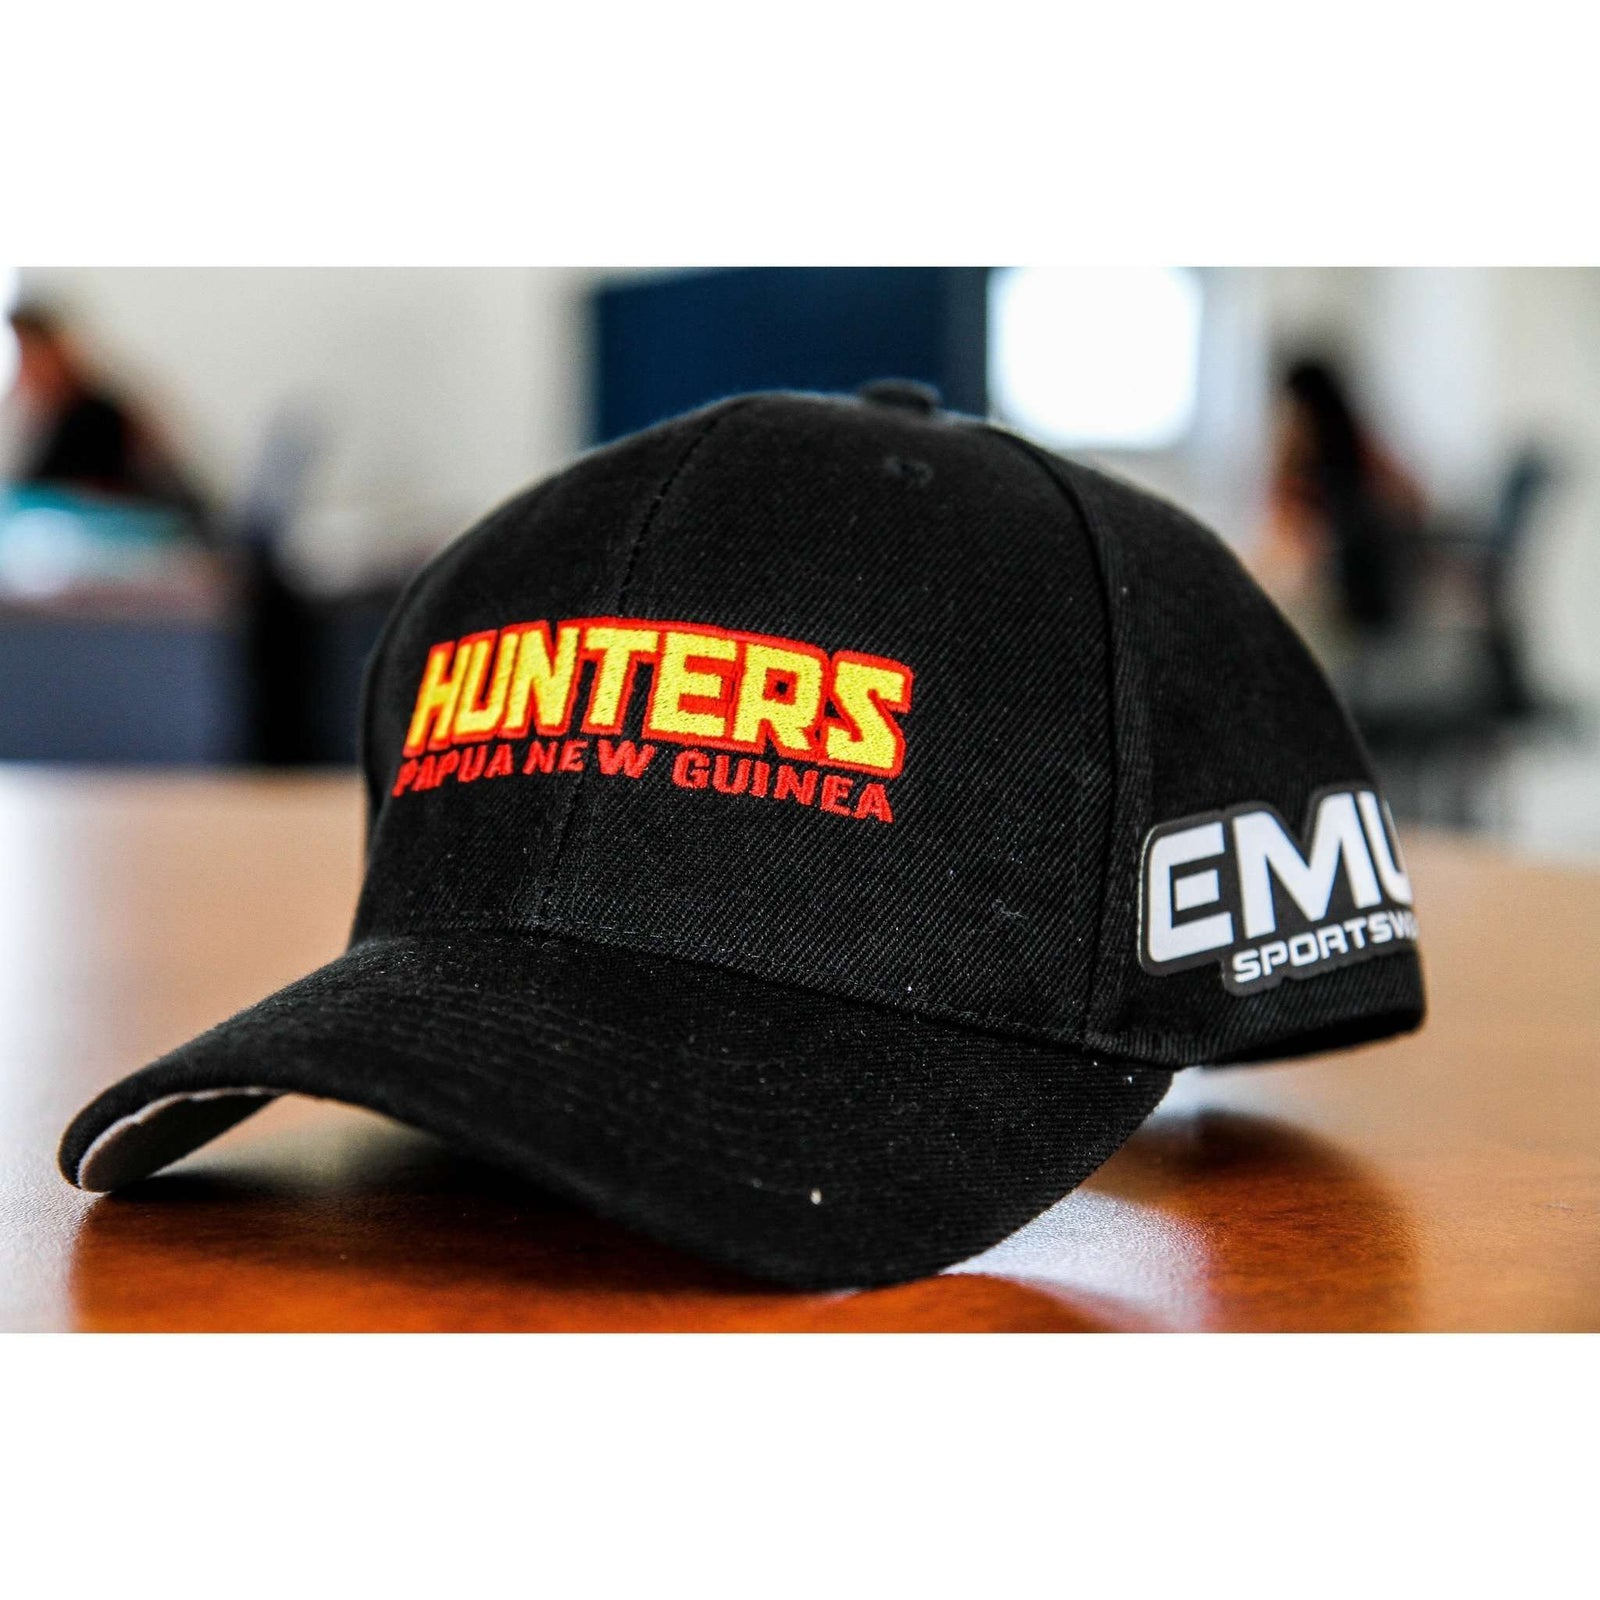 EMU Sportswear:SP PNG Hunters Players Cap